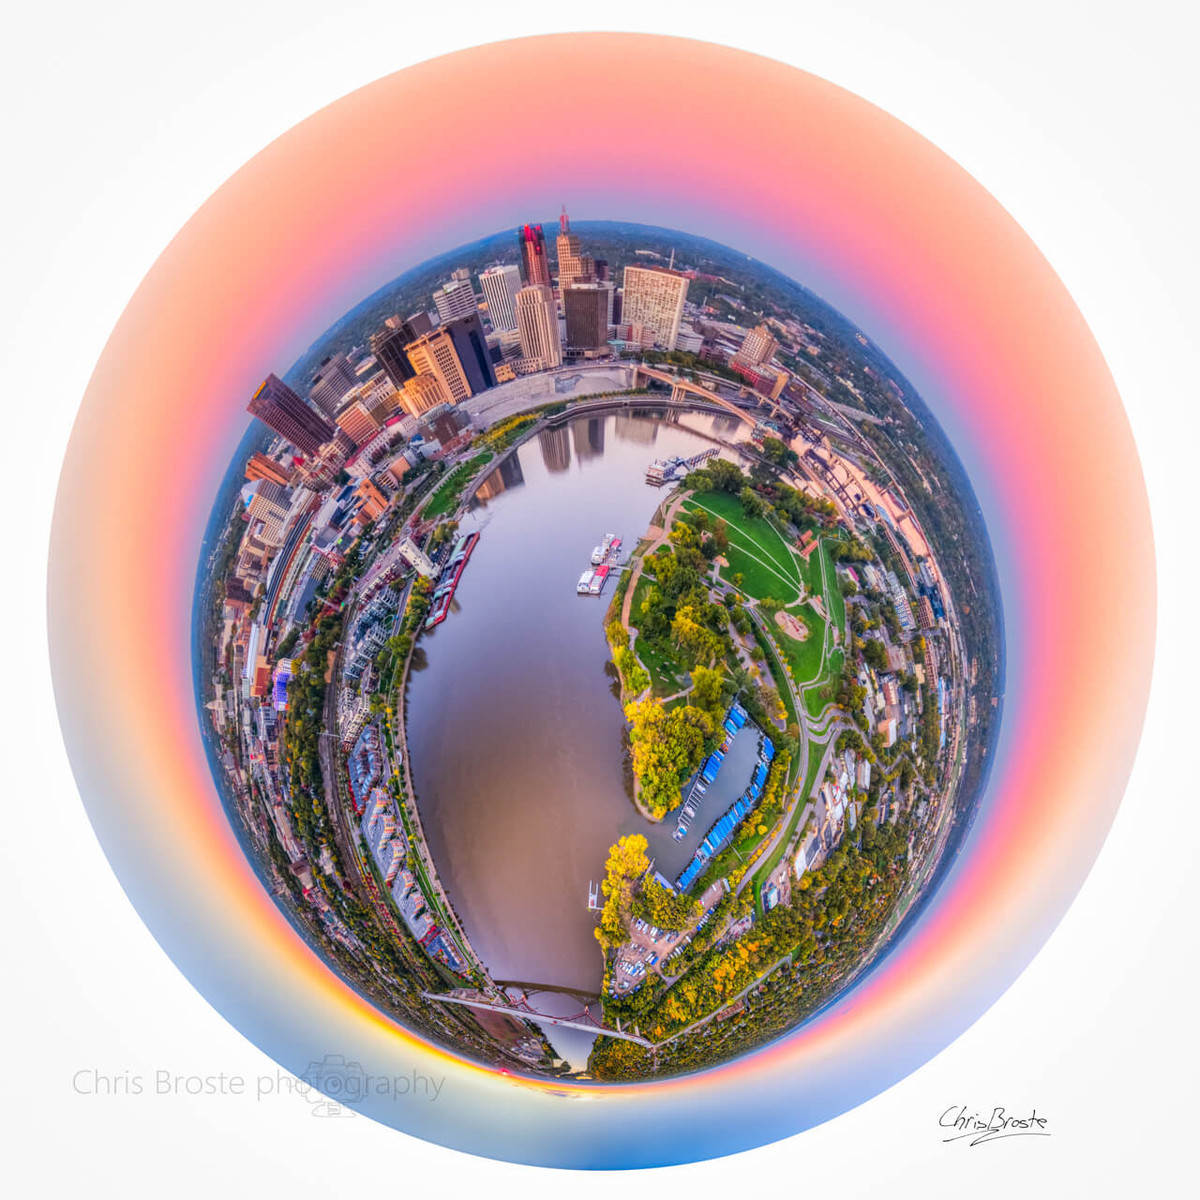 St. Pauls' skyline and riverfront from above in a 360 degree planet panorama photograph.